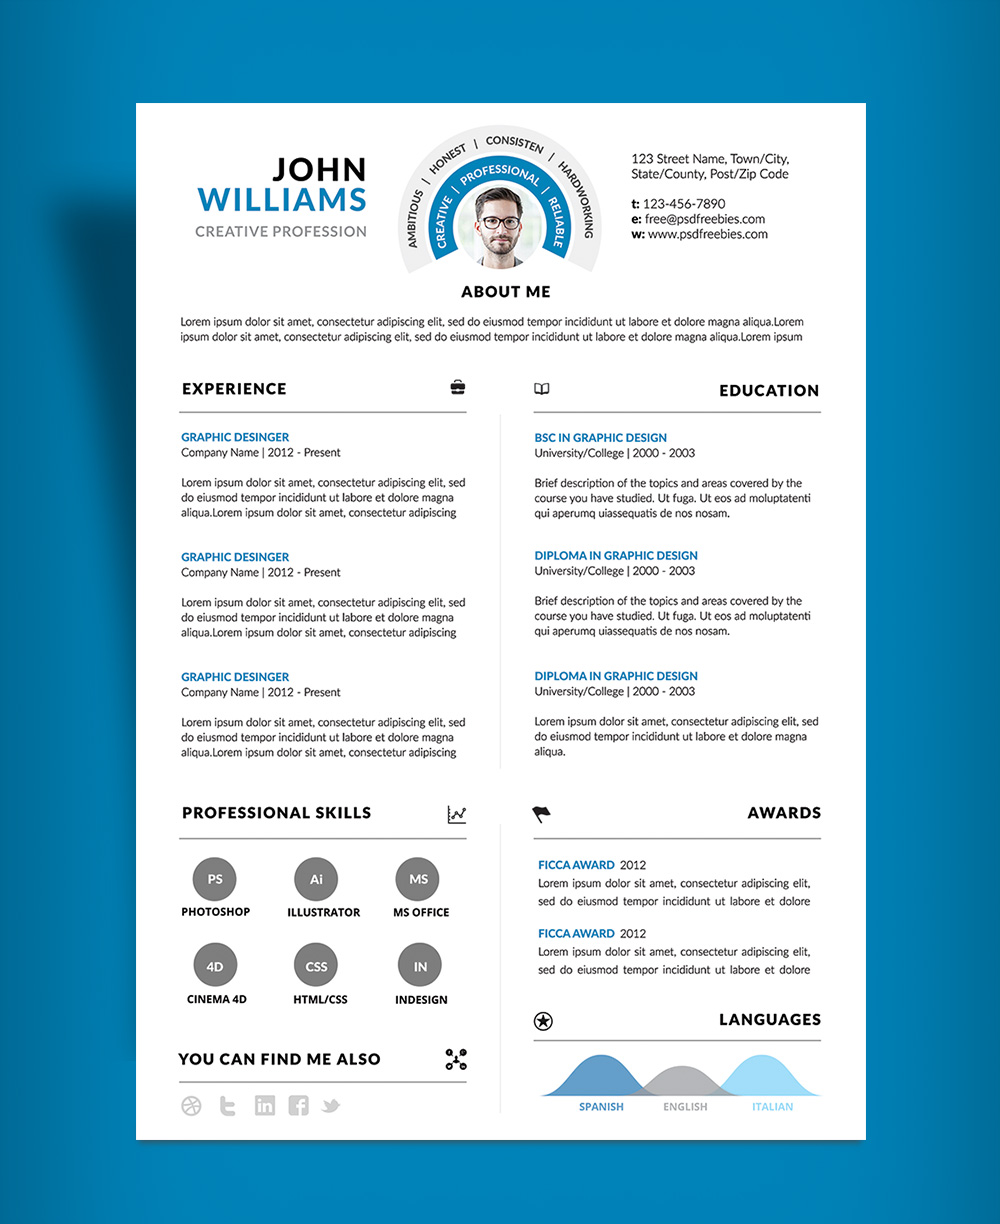 clean and professional resume cv design template psd file clean and professional resume cv design template psd file